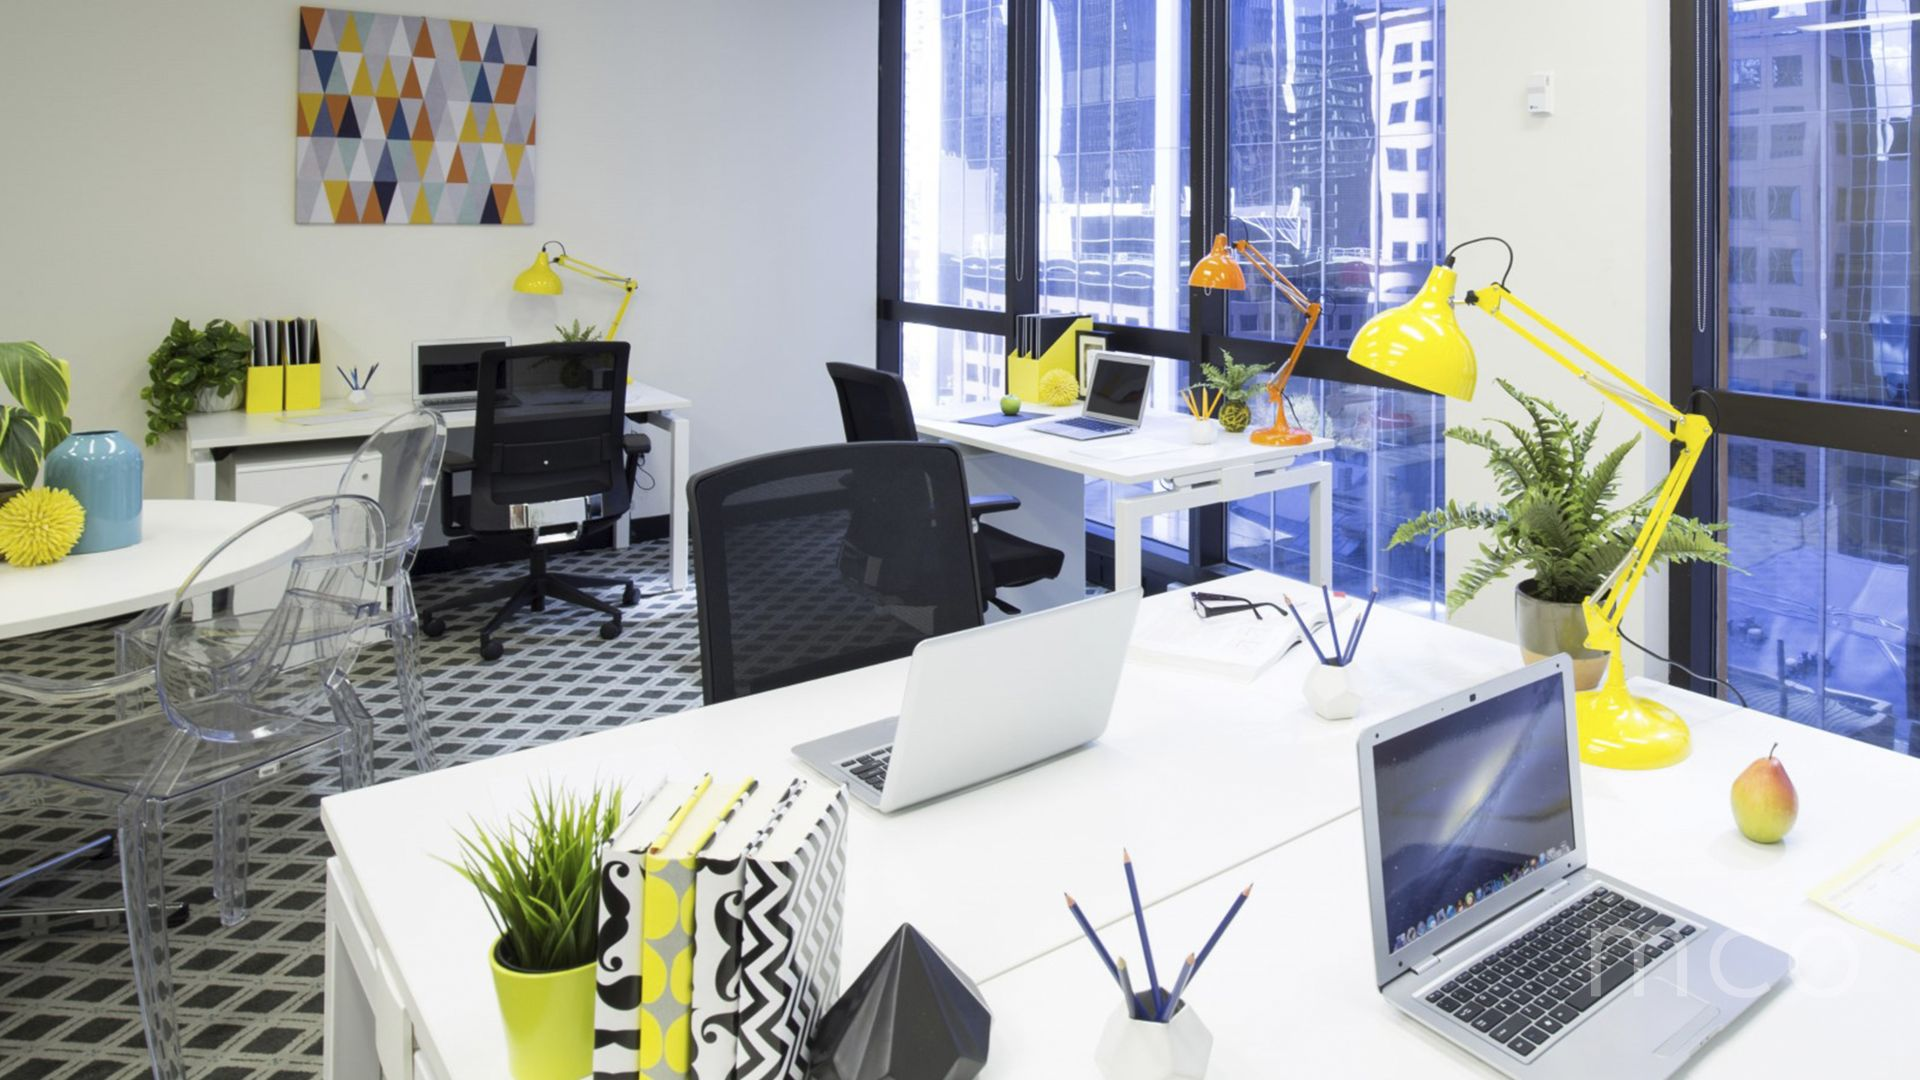 Superb leasing opportunity positioned in the heart of the CBD!